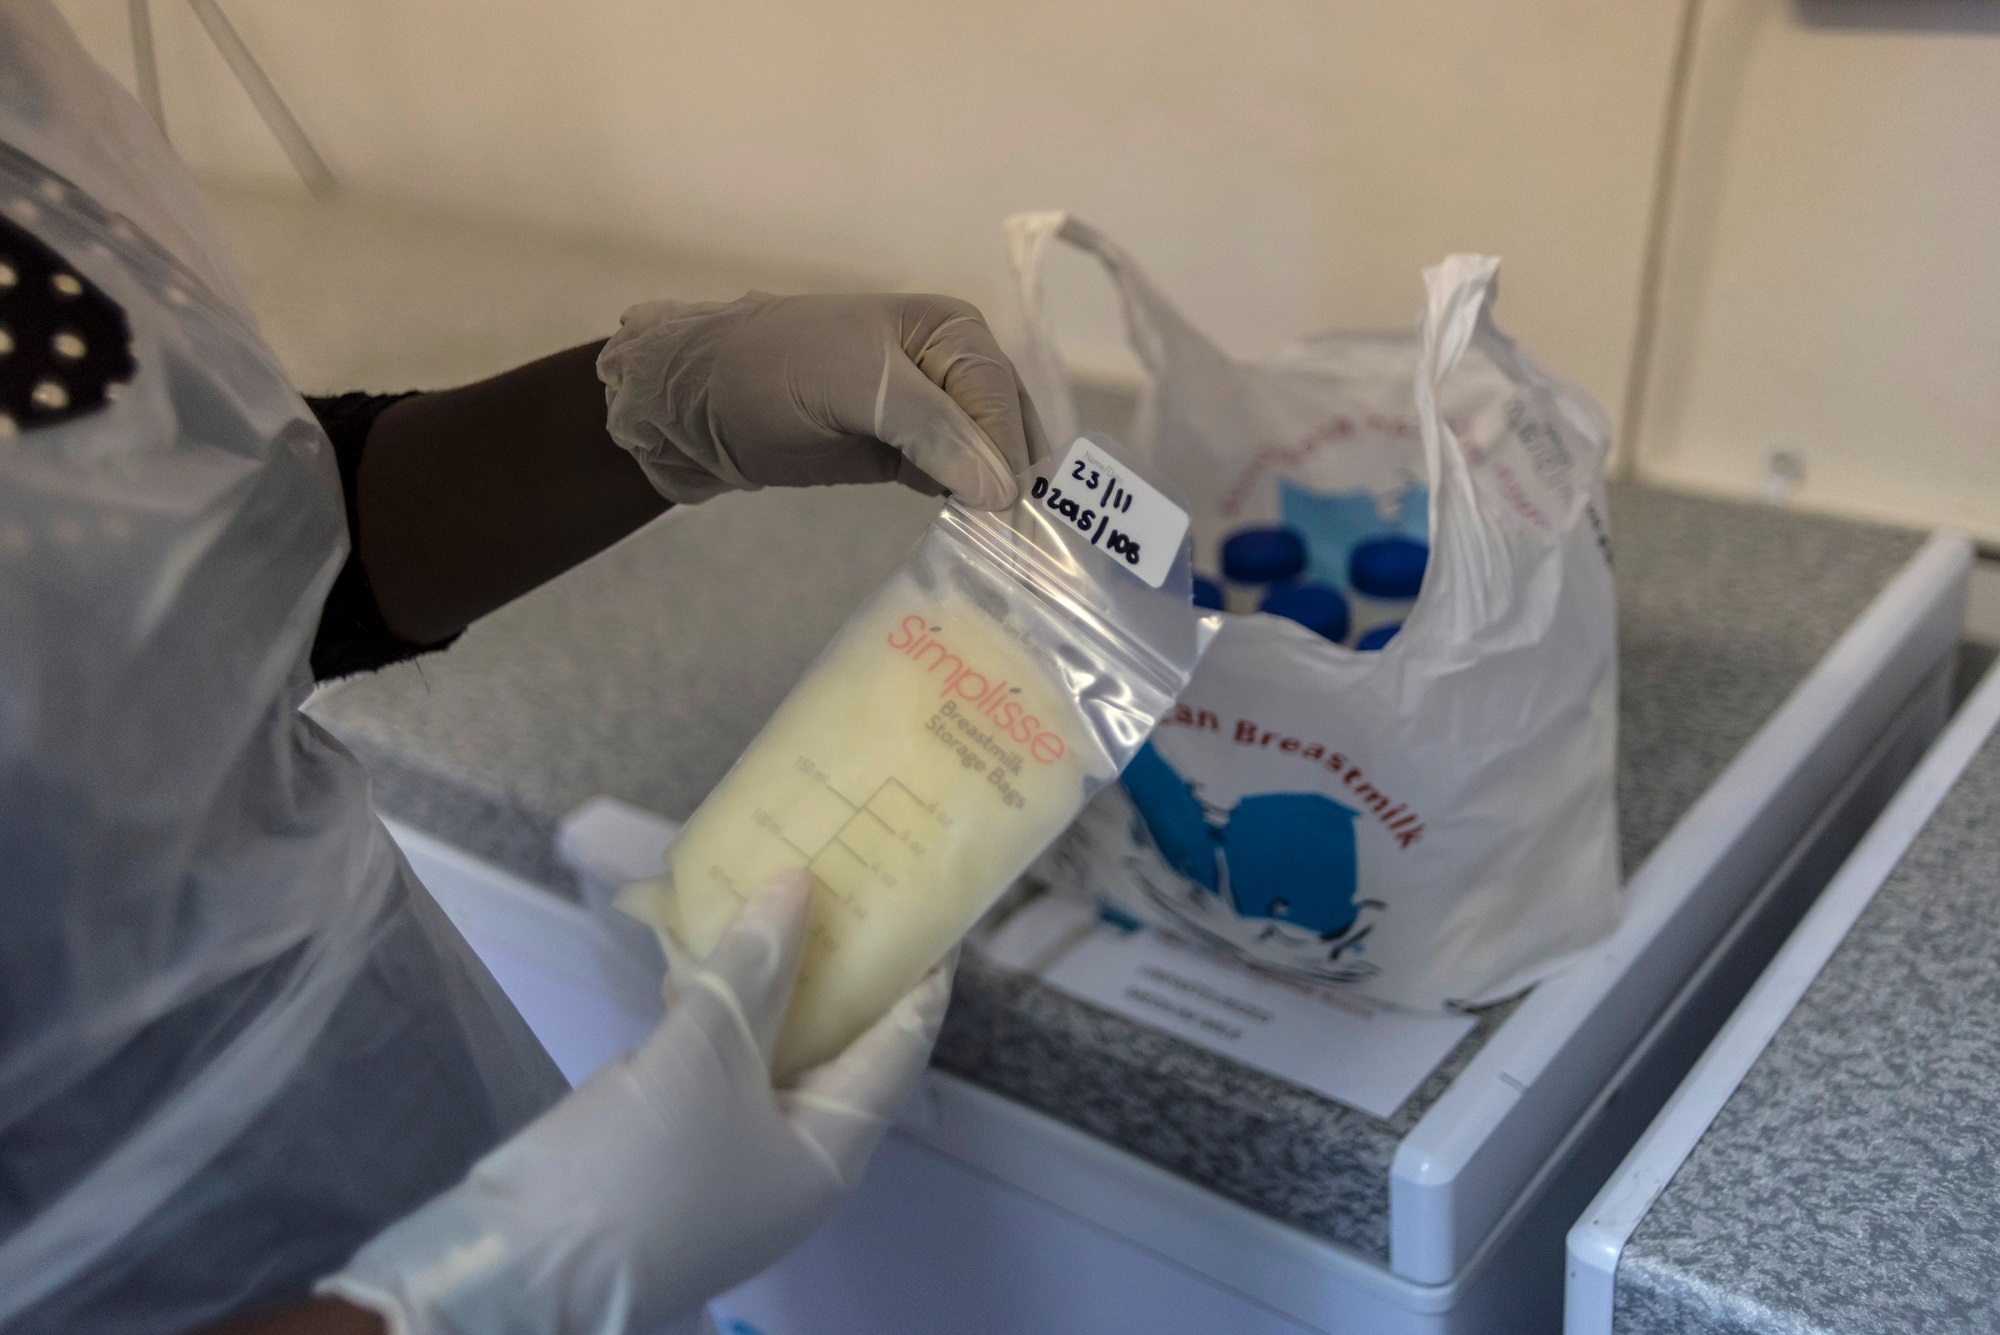 Kenya's first breast milk bank makes significant impact in just four months